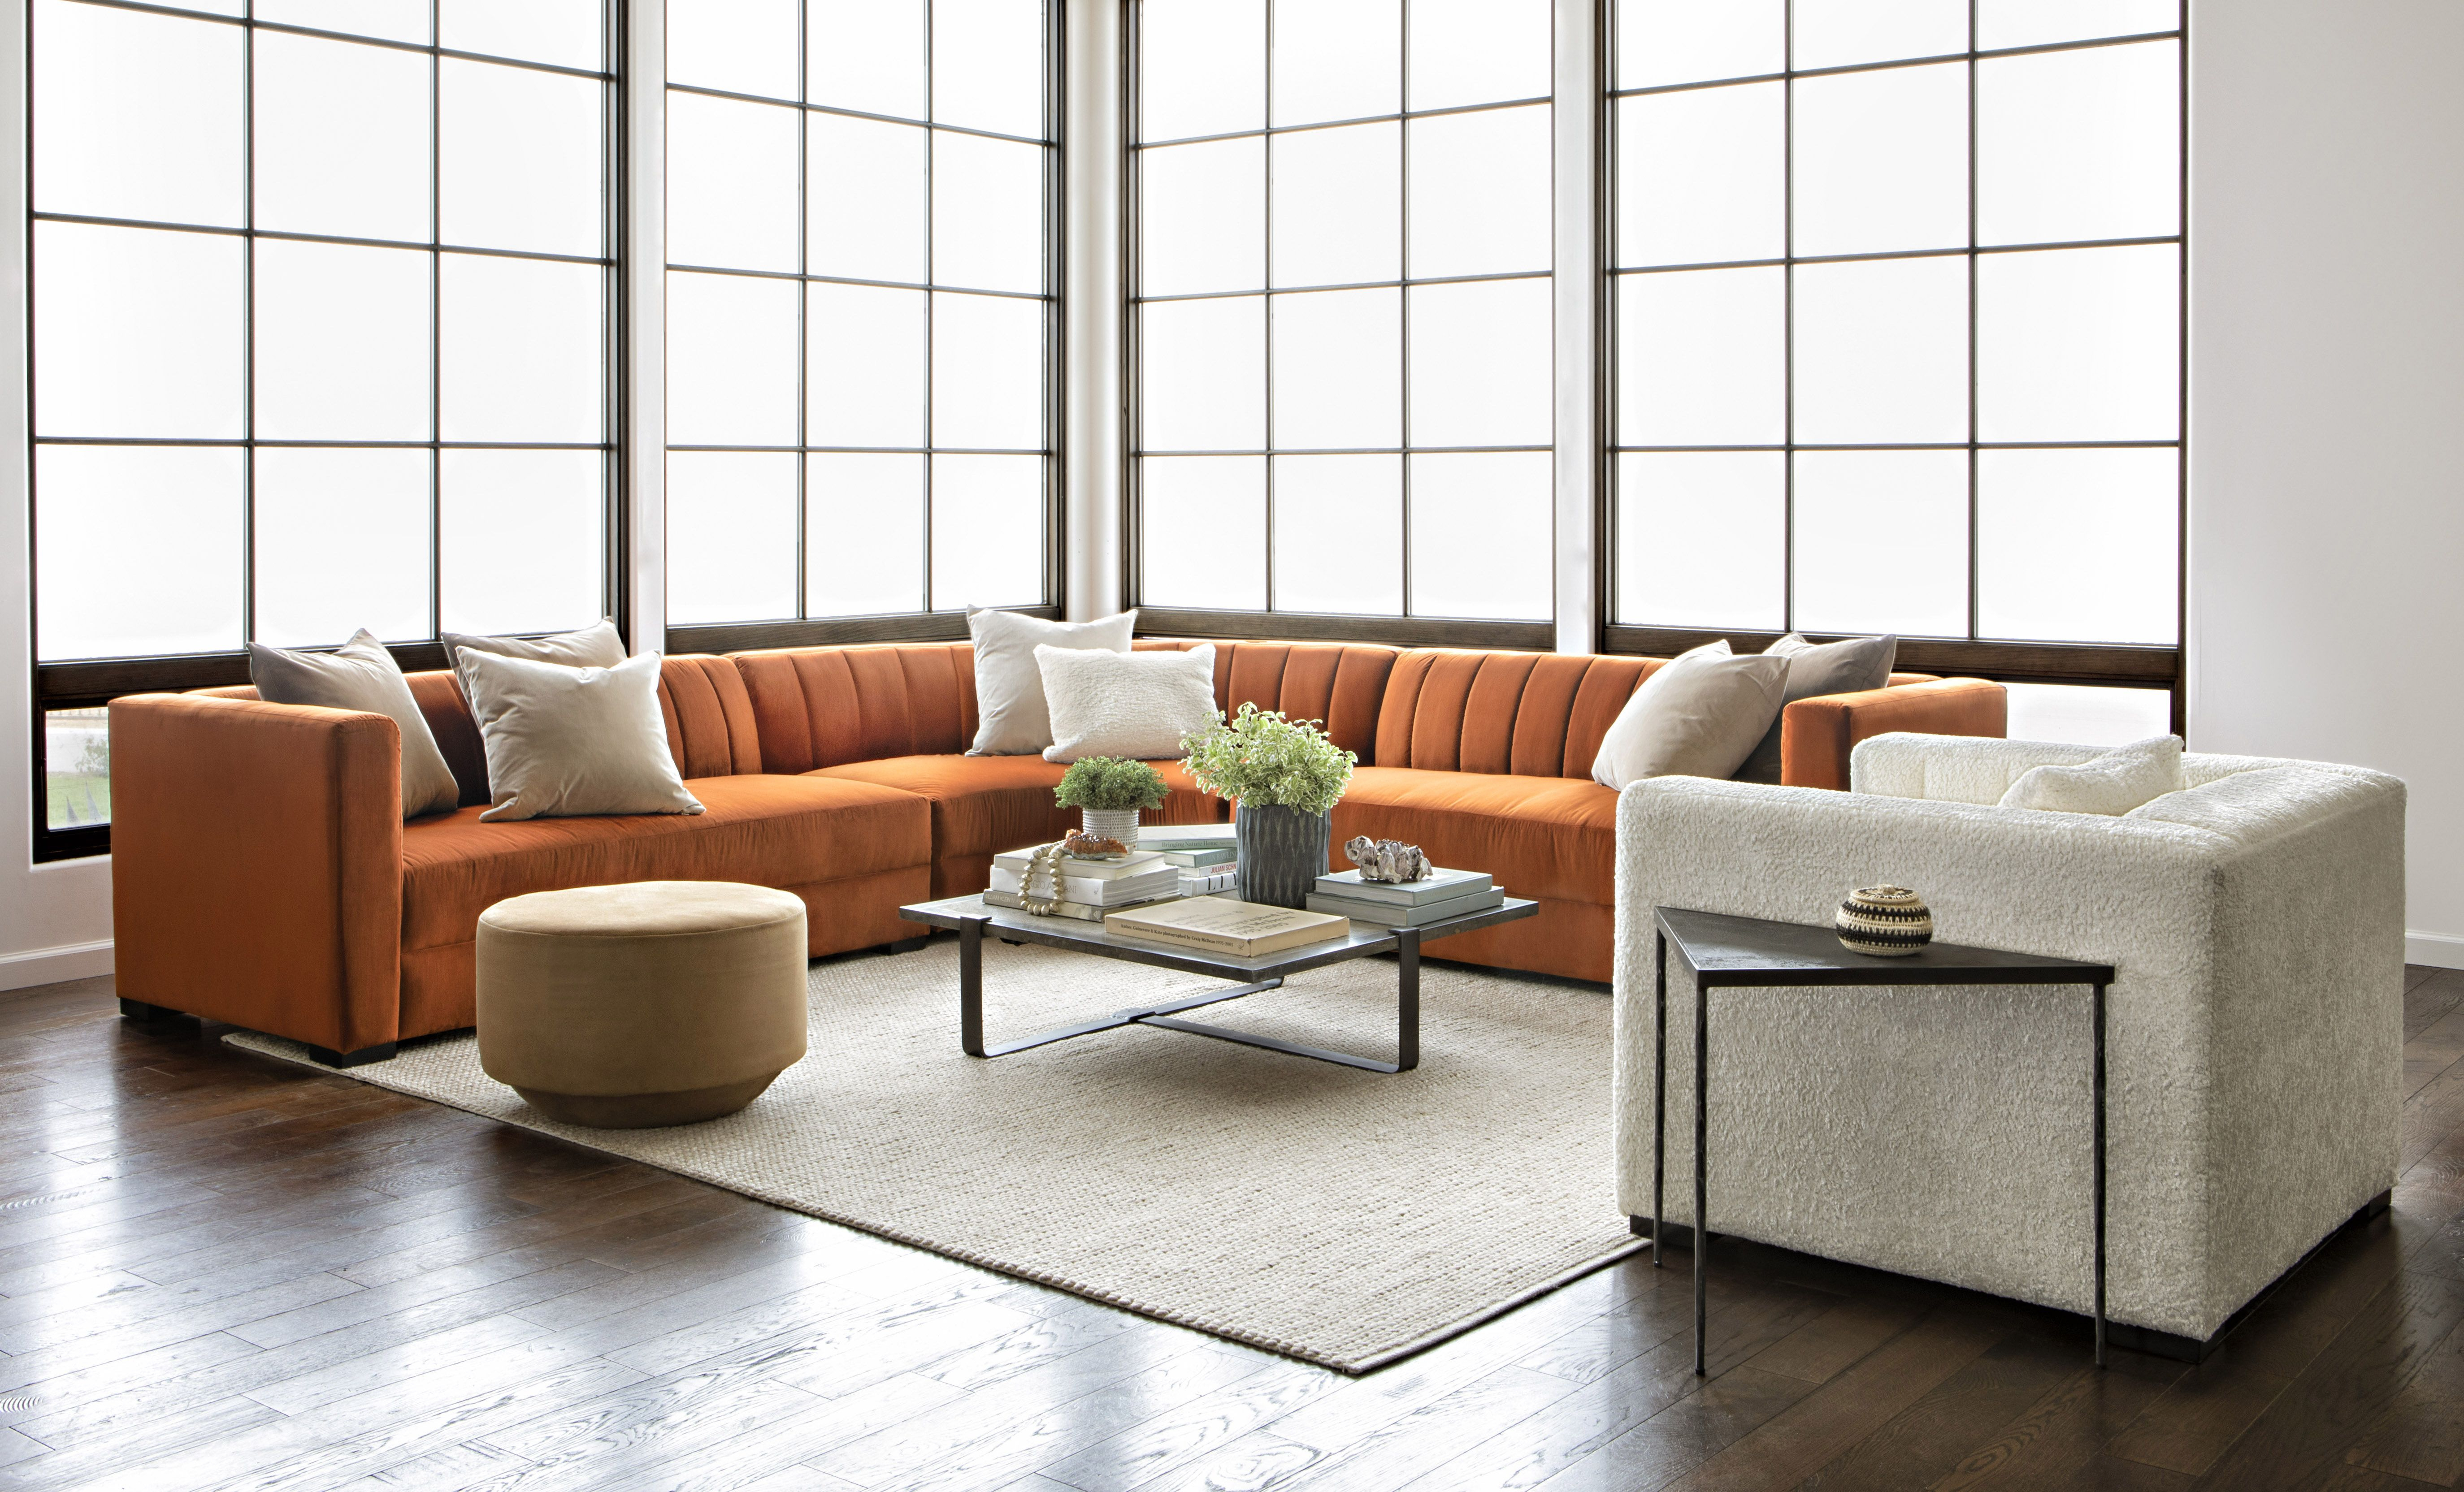 Soane 3 Piece Sectionalnate Berkus And Jeremiah Brent | Nate + In Liv Arm Sofa Chairs By Nate Berkus And Jeremiah Brent (View 18 of 25)